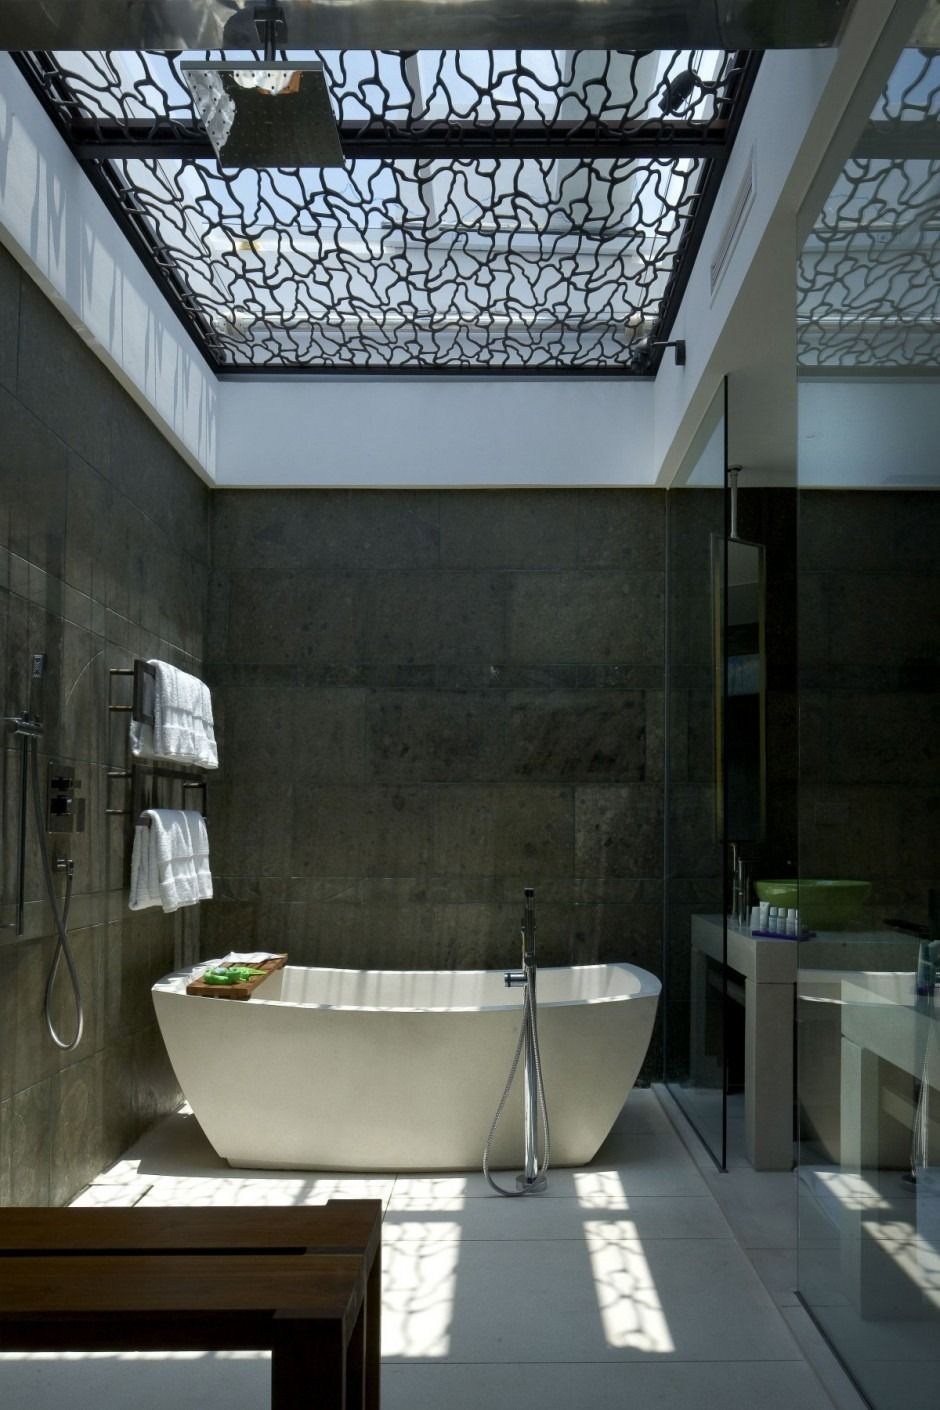 Dream bathrooms tumblr bathroom design  tumblr  ceiling  pinterest  bathroom designs